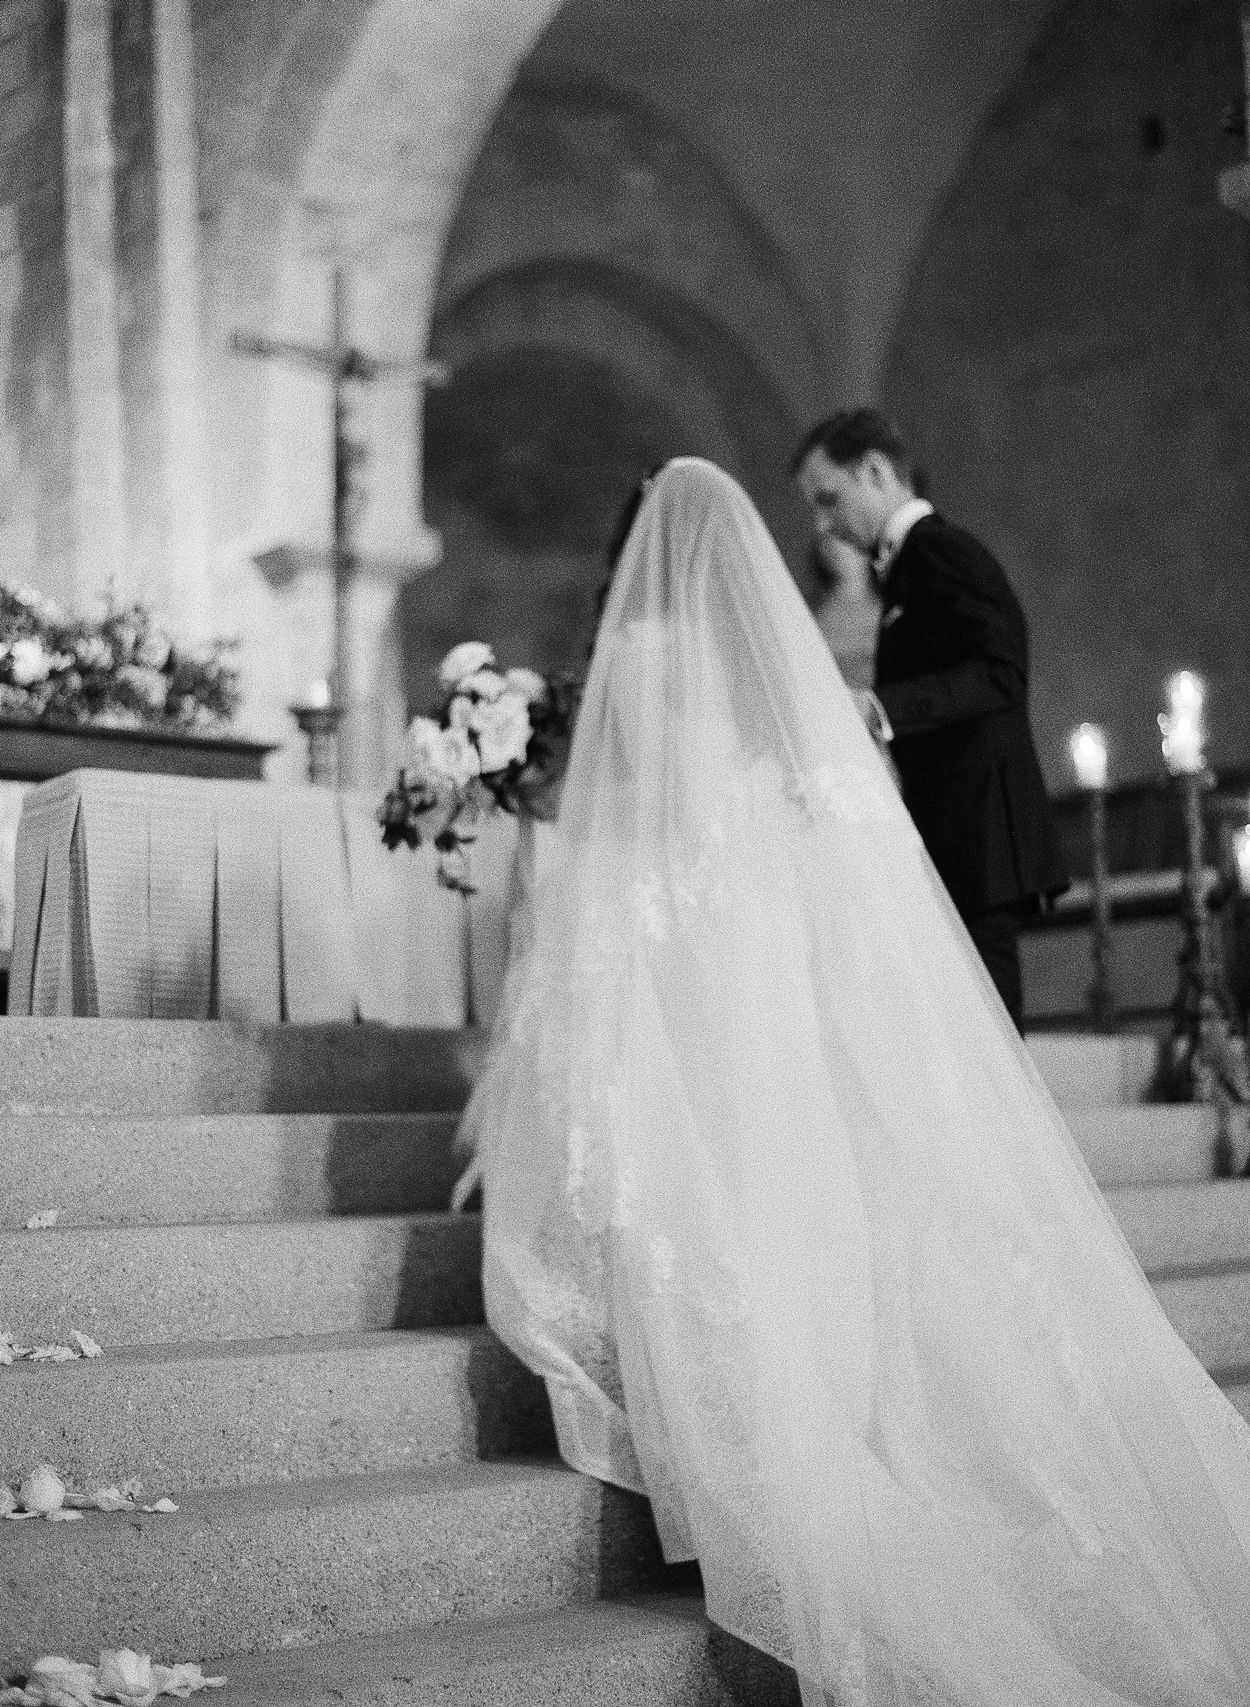 bride and groom at catholic ceremony wedding alter